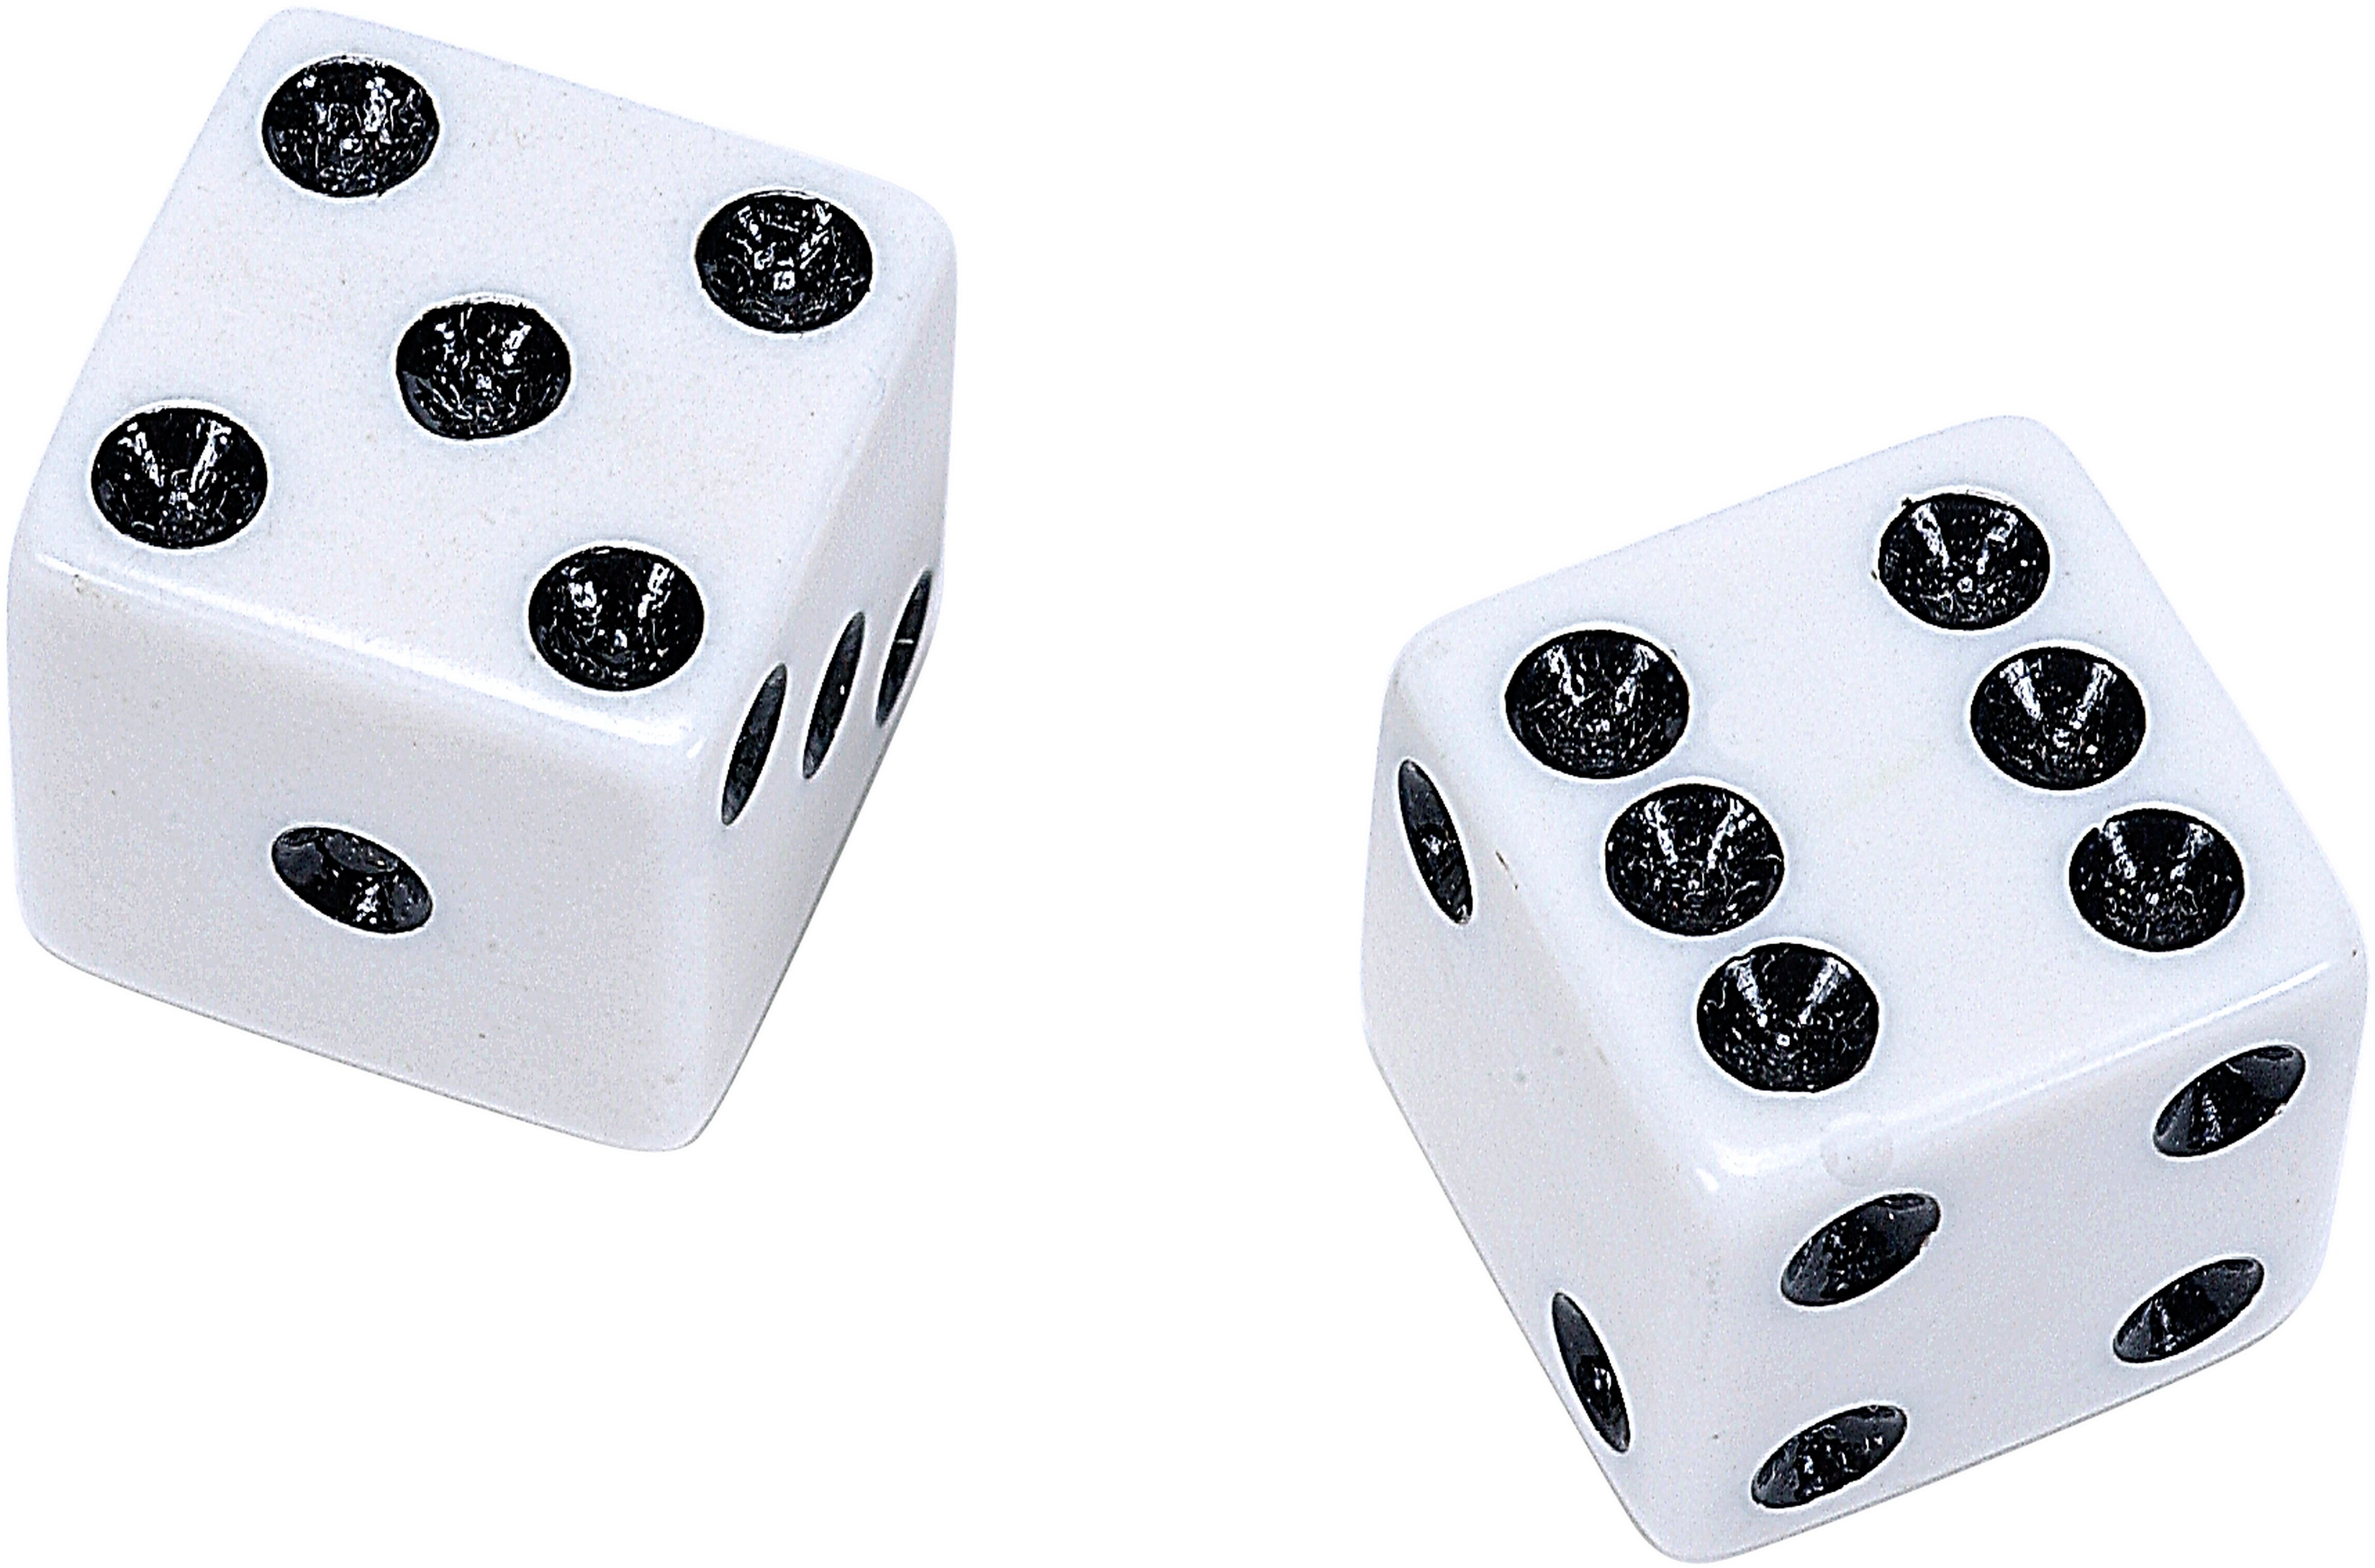 Rules For The 4 5 6 Dice Game